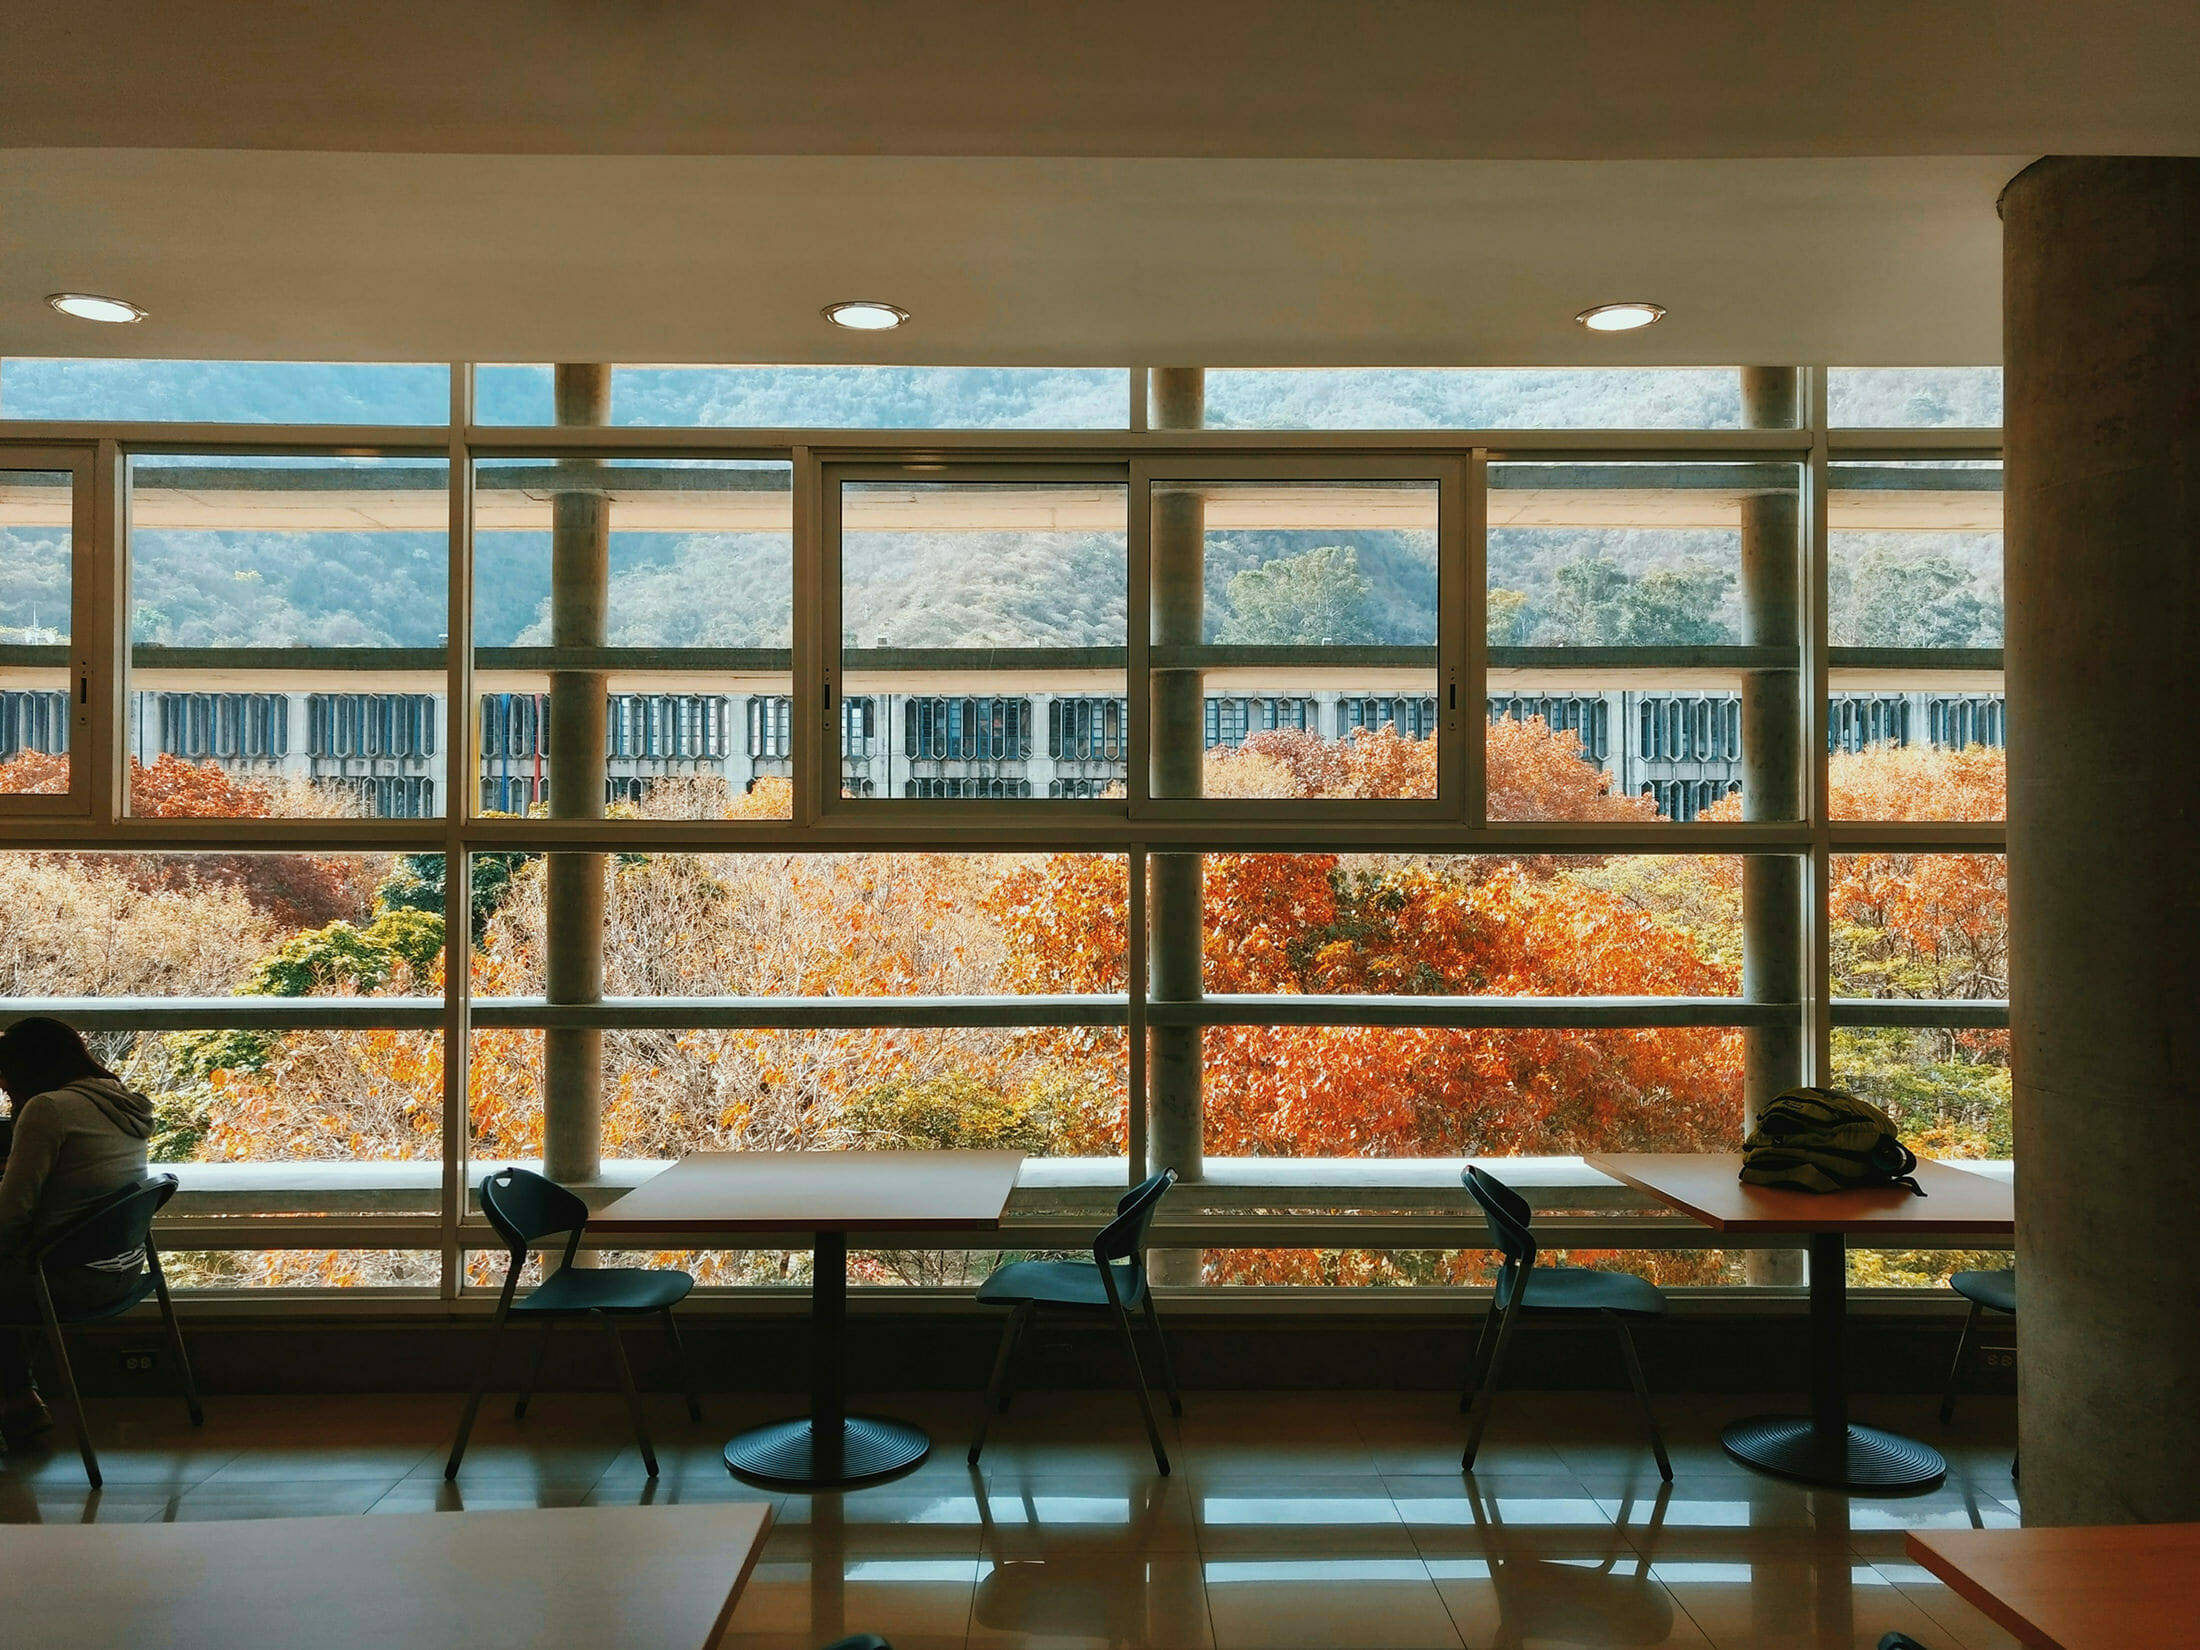 Academic Advising Metrics - Photo of a Place on Campus Where Students Might Meet to Study